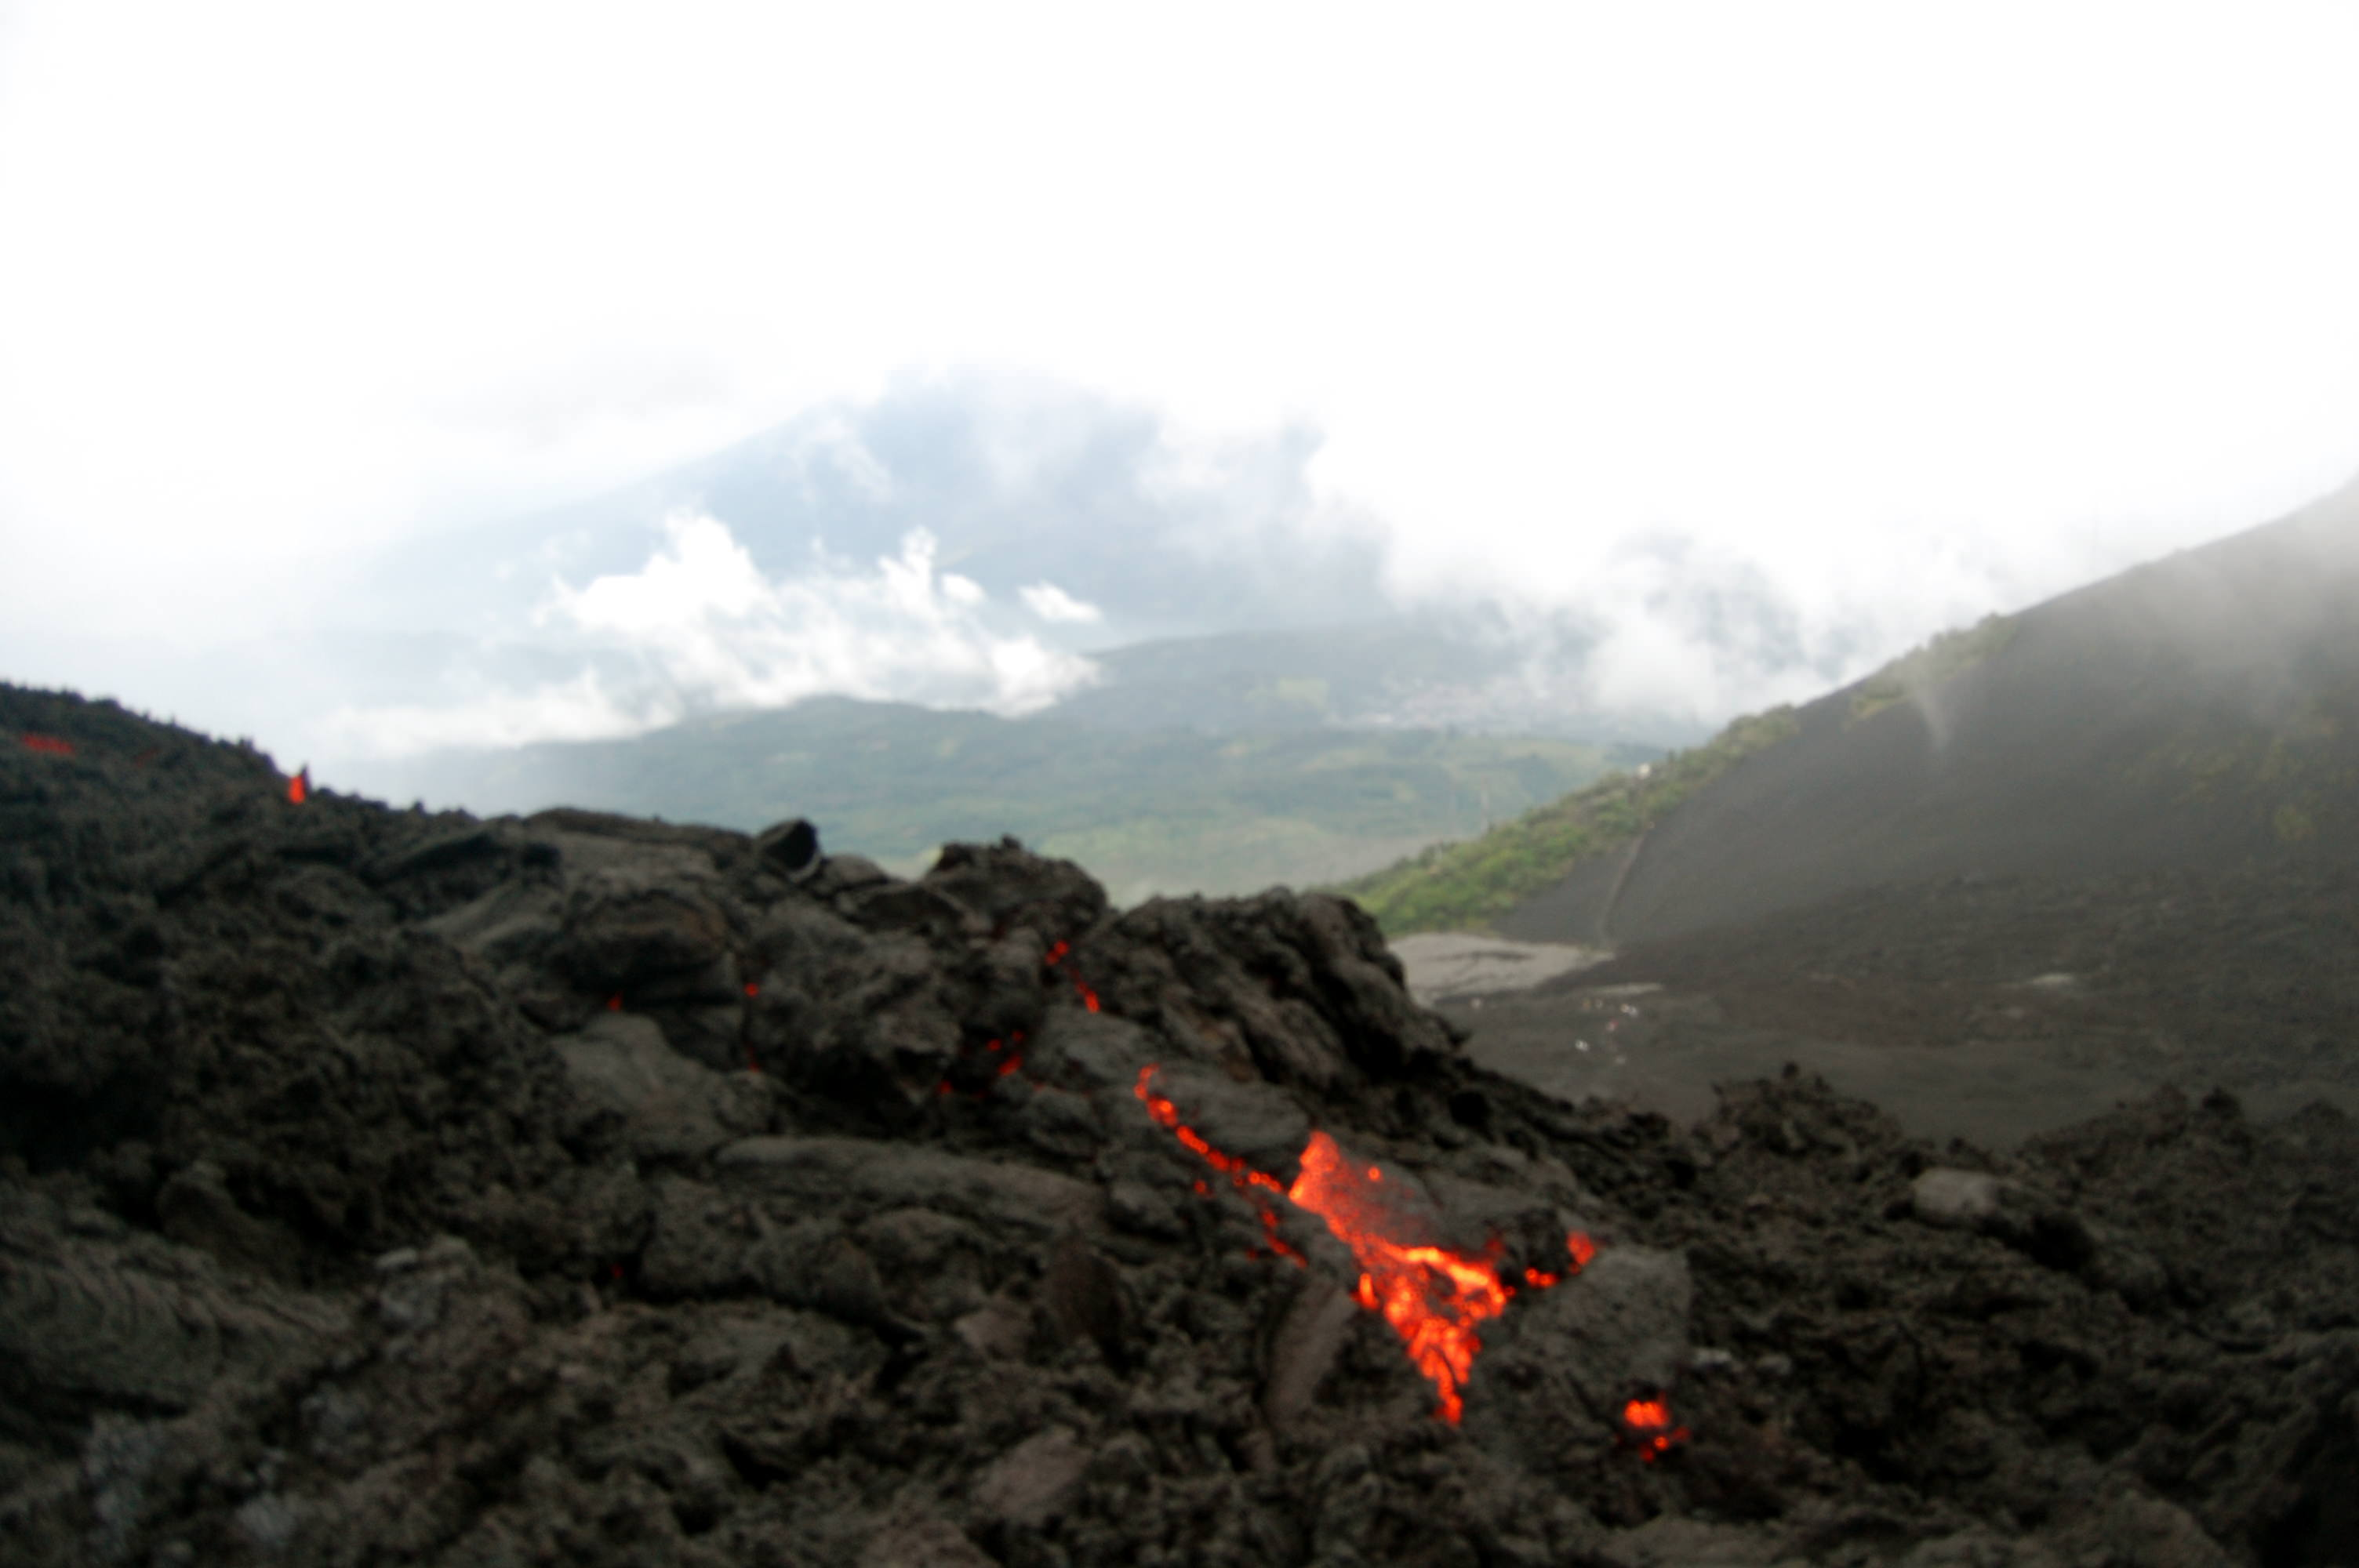 View of lava on Pacaya Volcano in Guatemala